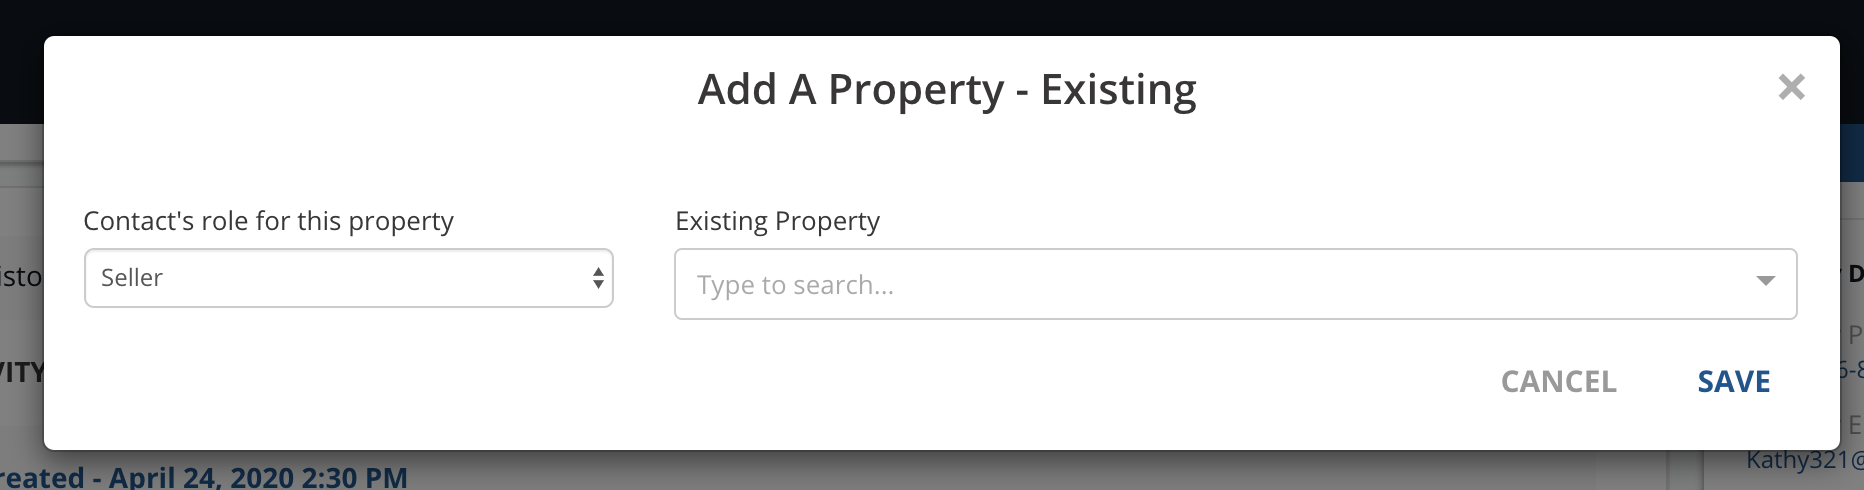 Add a property existing